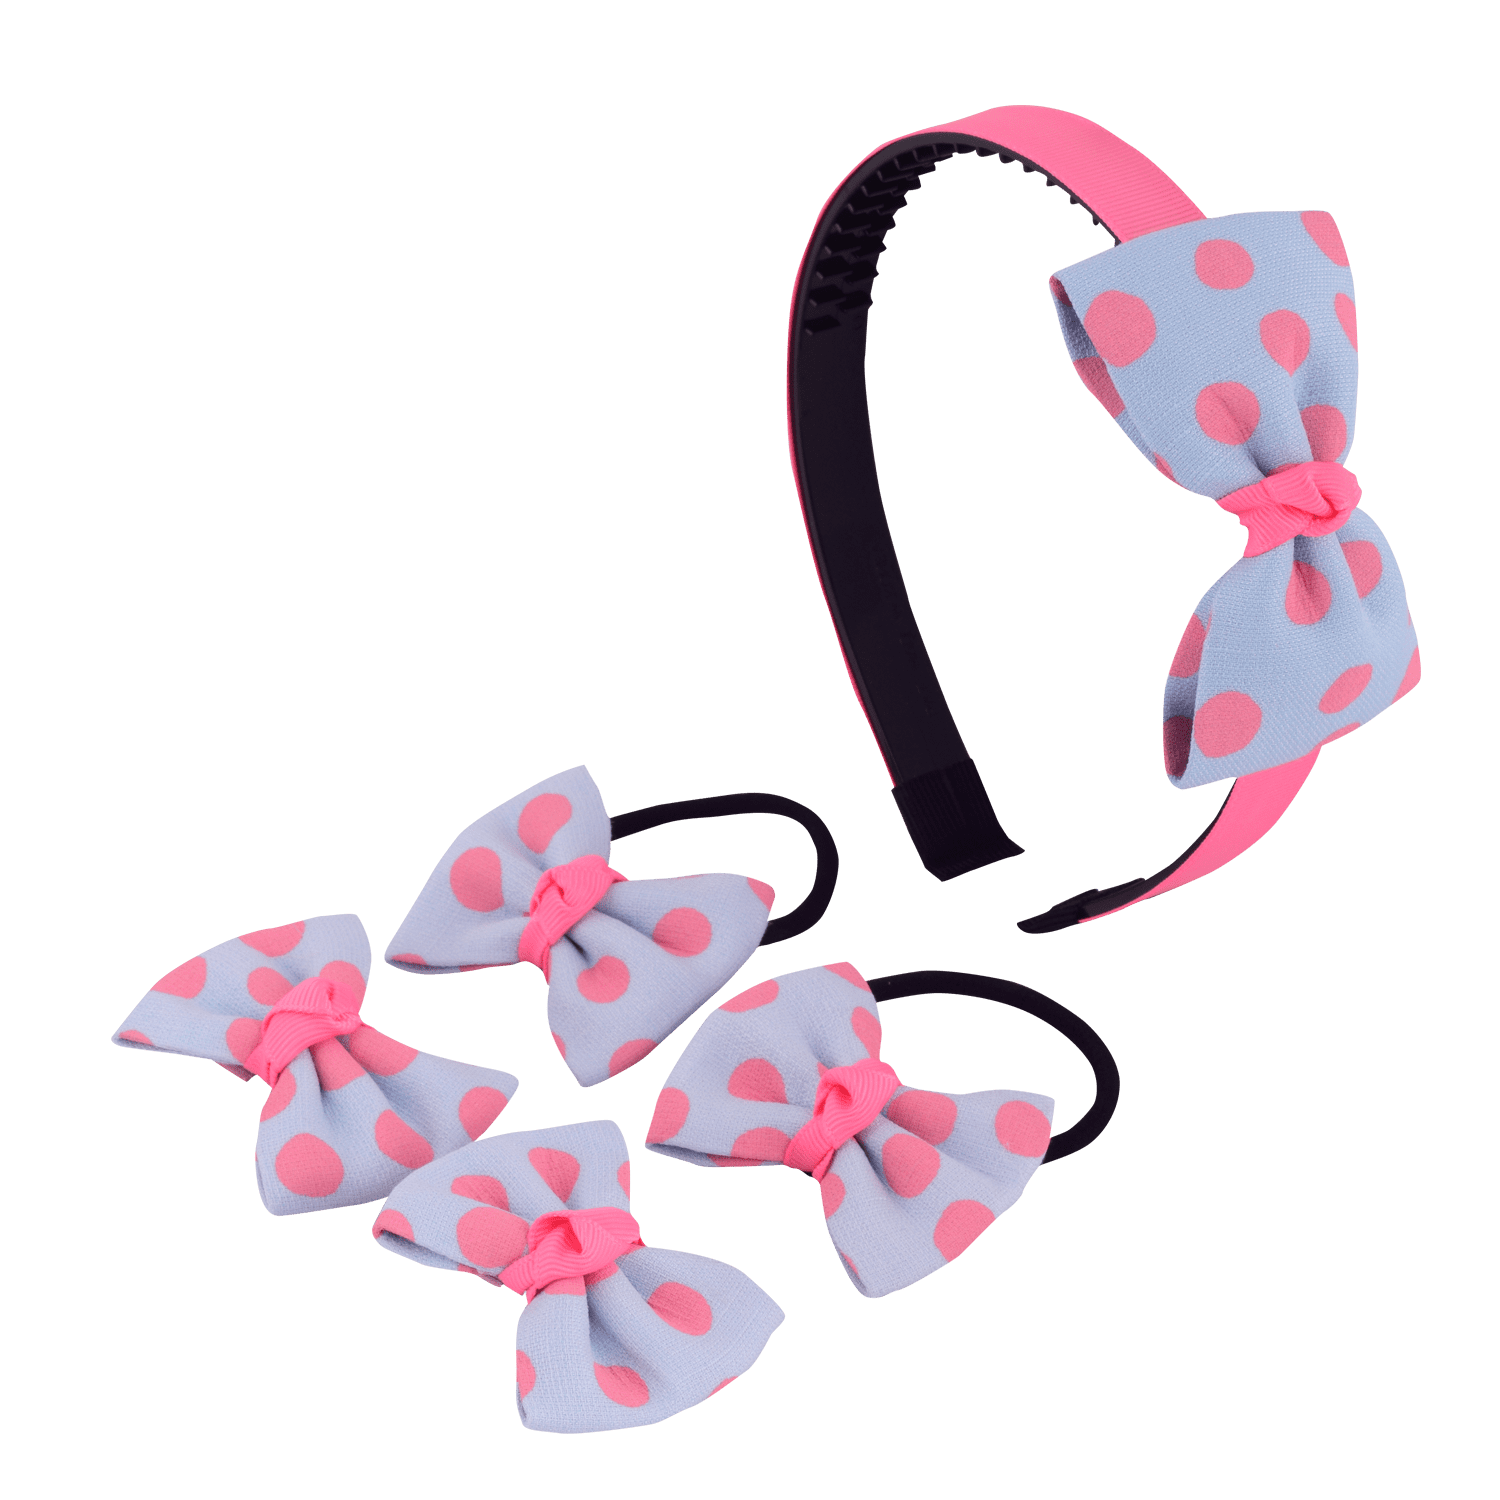 polka-bow-hair-accessory-set-hofa6016lblpin